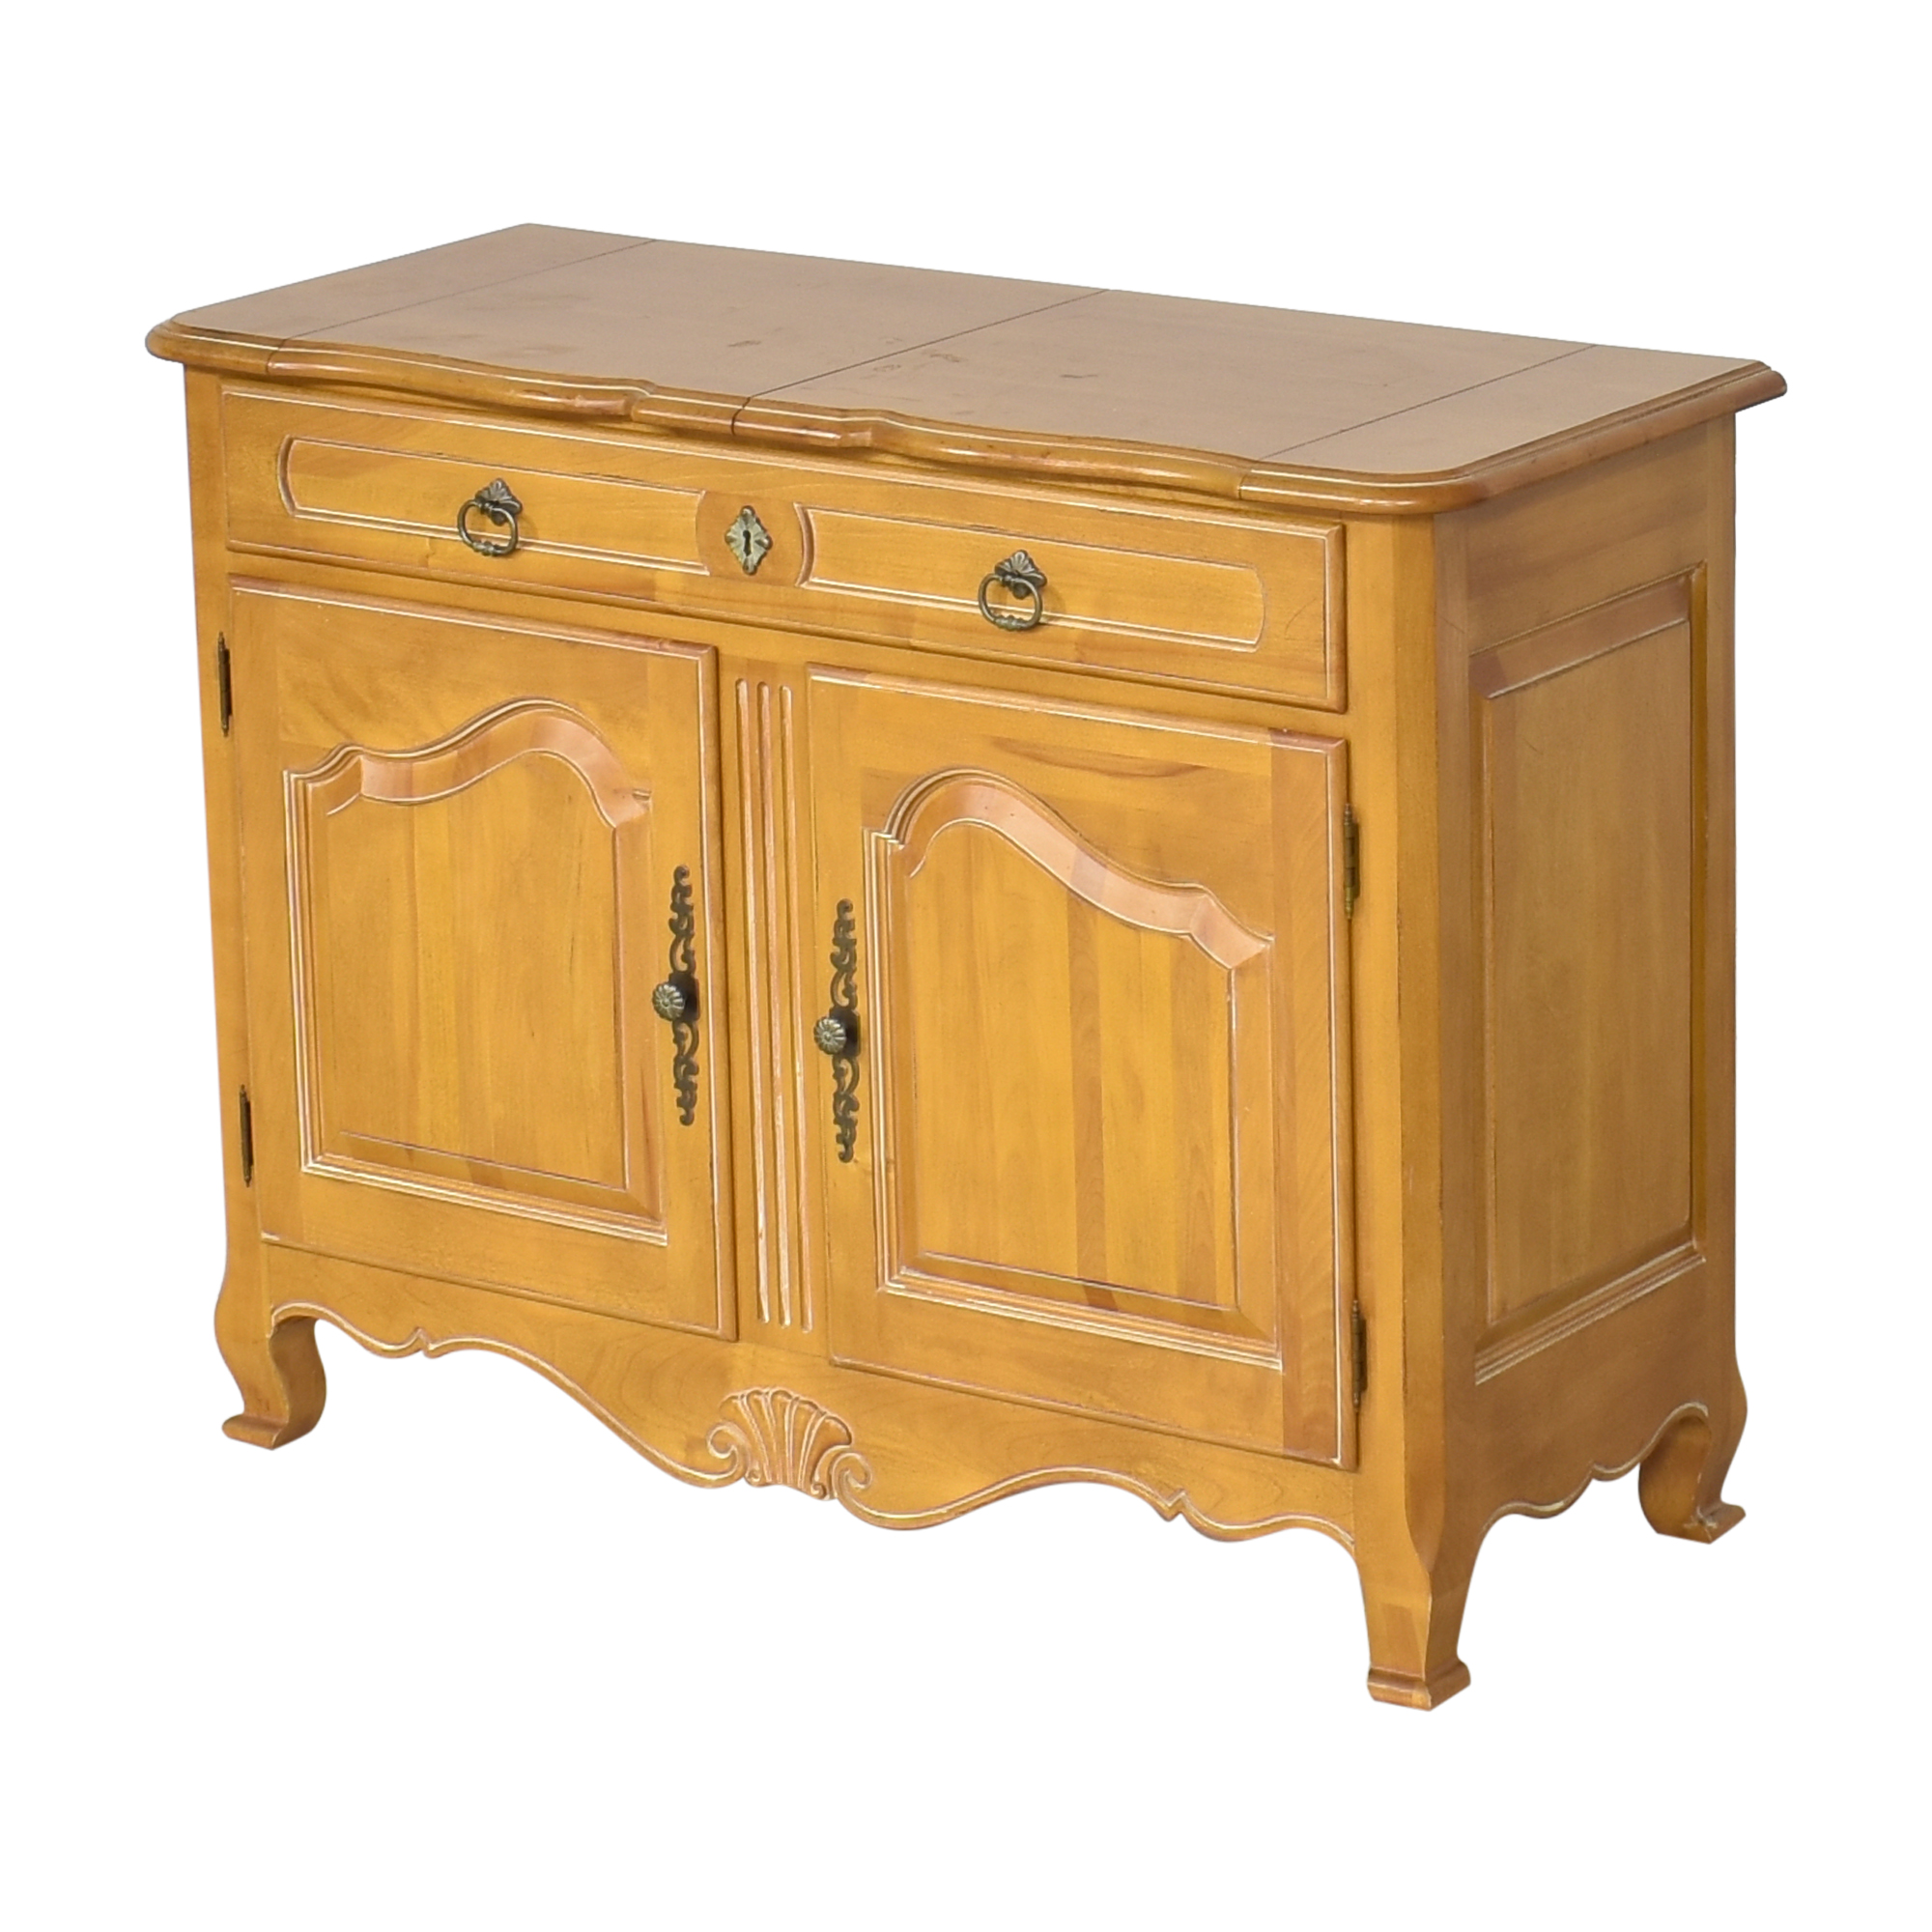 Ethan Allen Ethan Allen Legacy Collection Sideboard pa